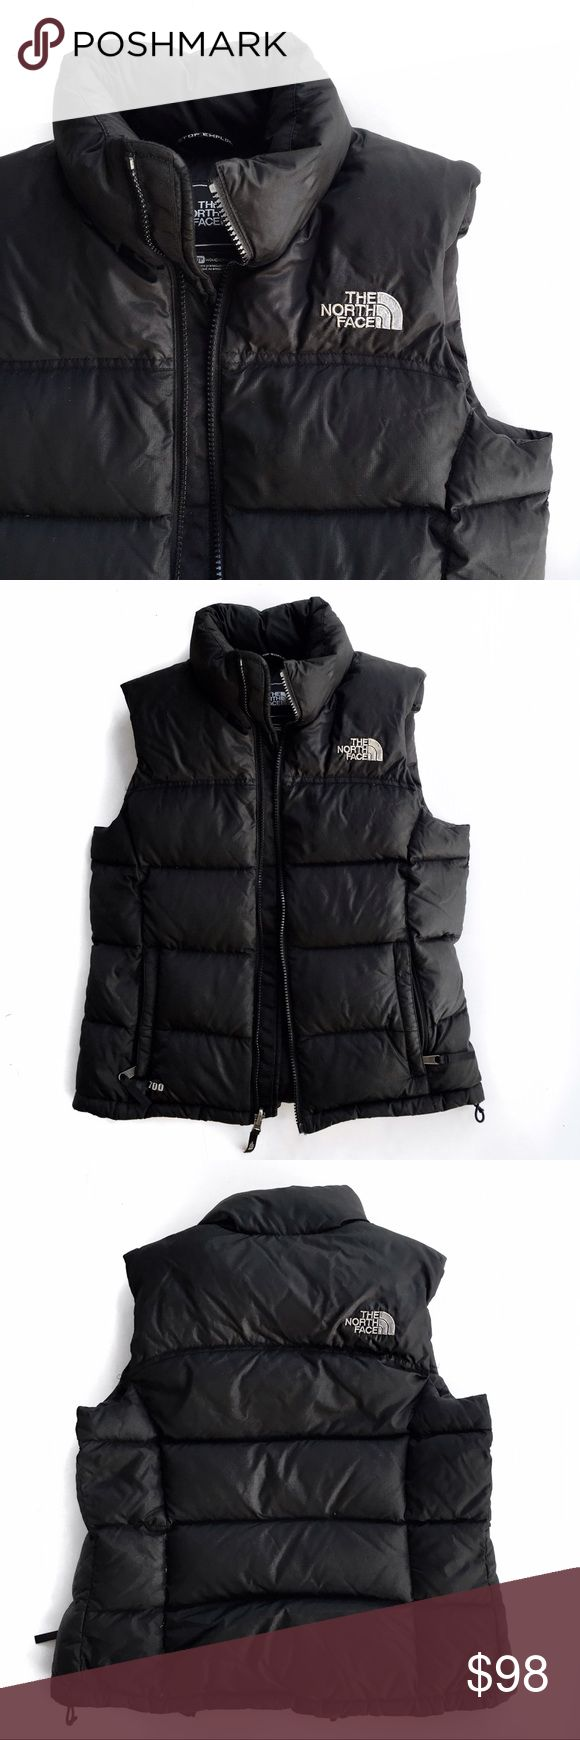 North face 700 puffer vest Super chic must have! Tag says xs but I am a small and this fits me just fine but may not zip if you have a larger chest area. No trades. Open to offers The North Face Jackets & Coats Vests